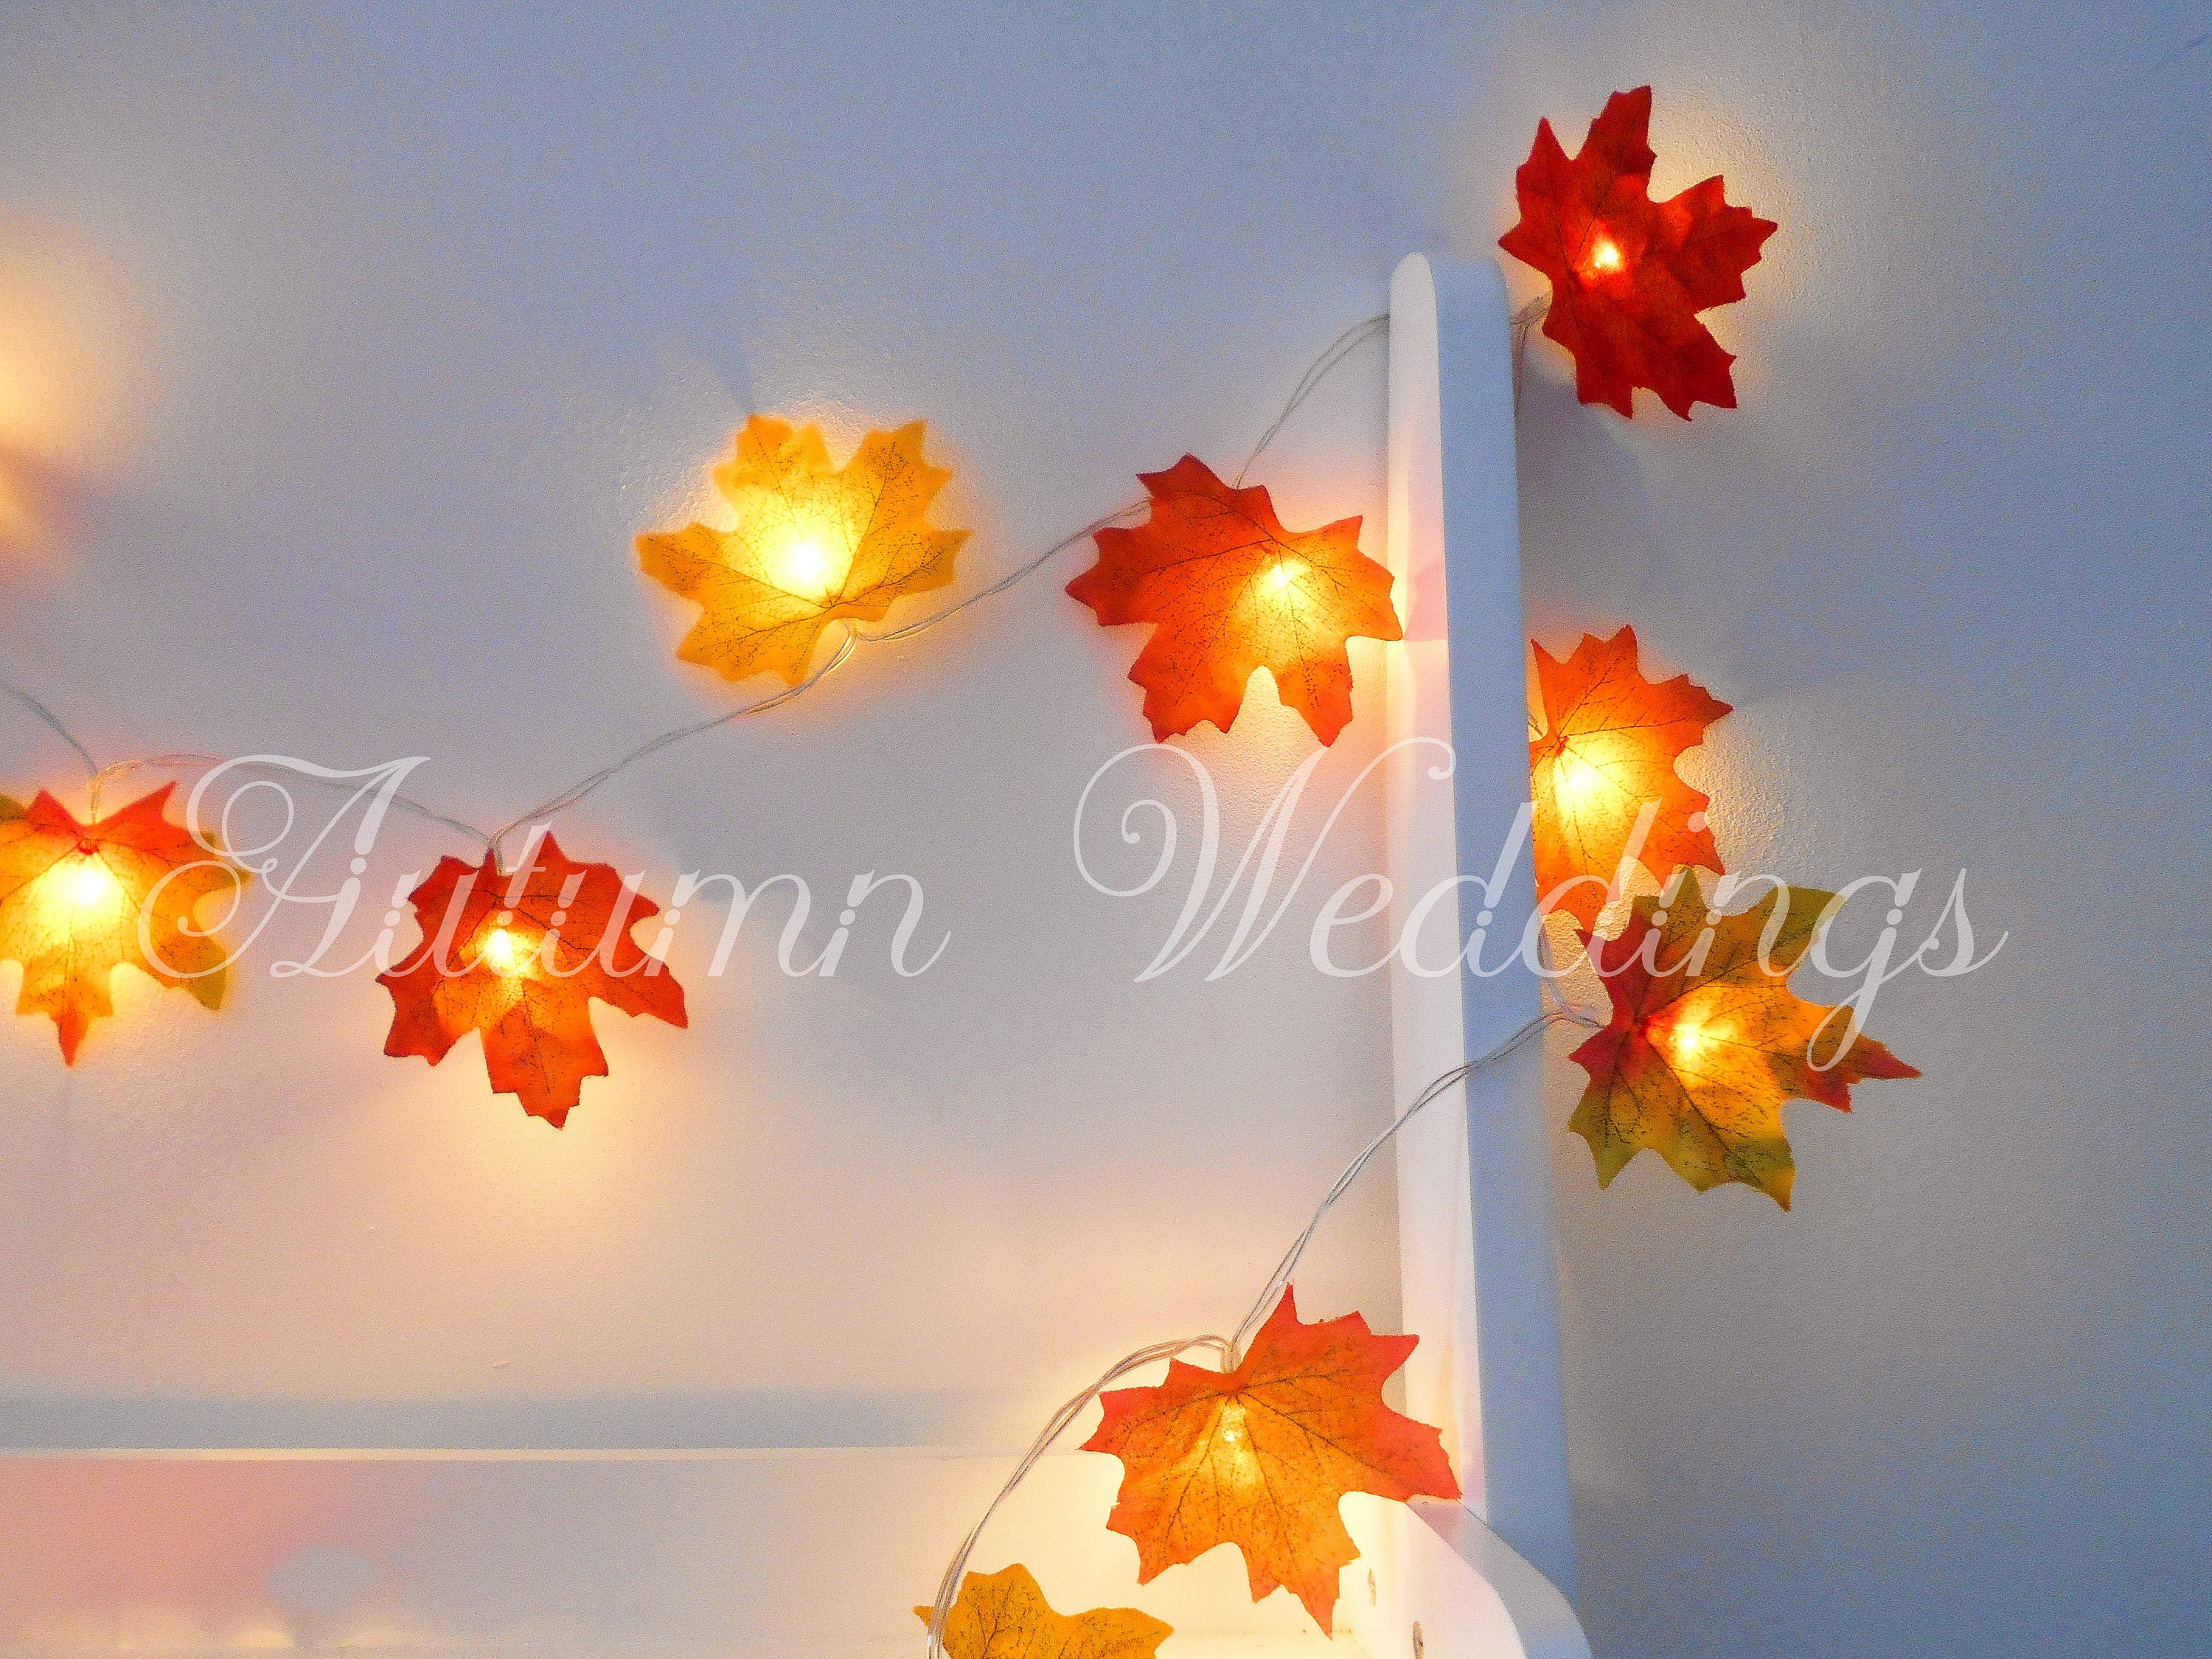 Night lights baby bunting - Autumn Fairy Lights 1 10m Mixed String Lights Autumn Leaves Wedding Decorations Led Garland Battery Operated Leaf Weddings Wedding Decor